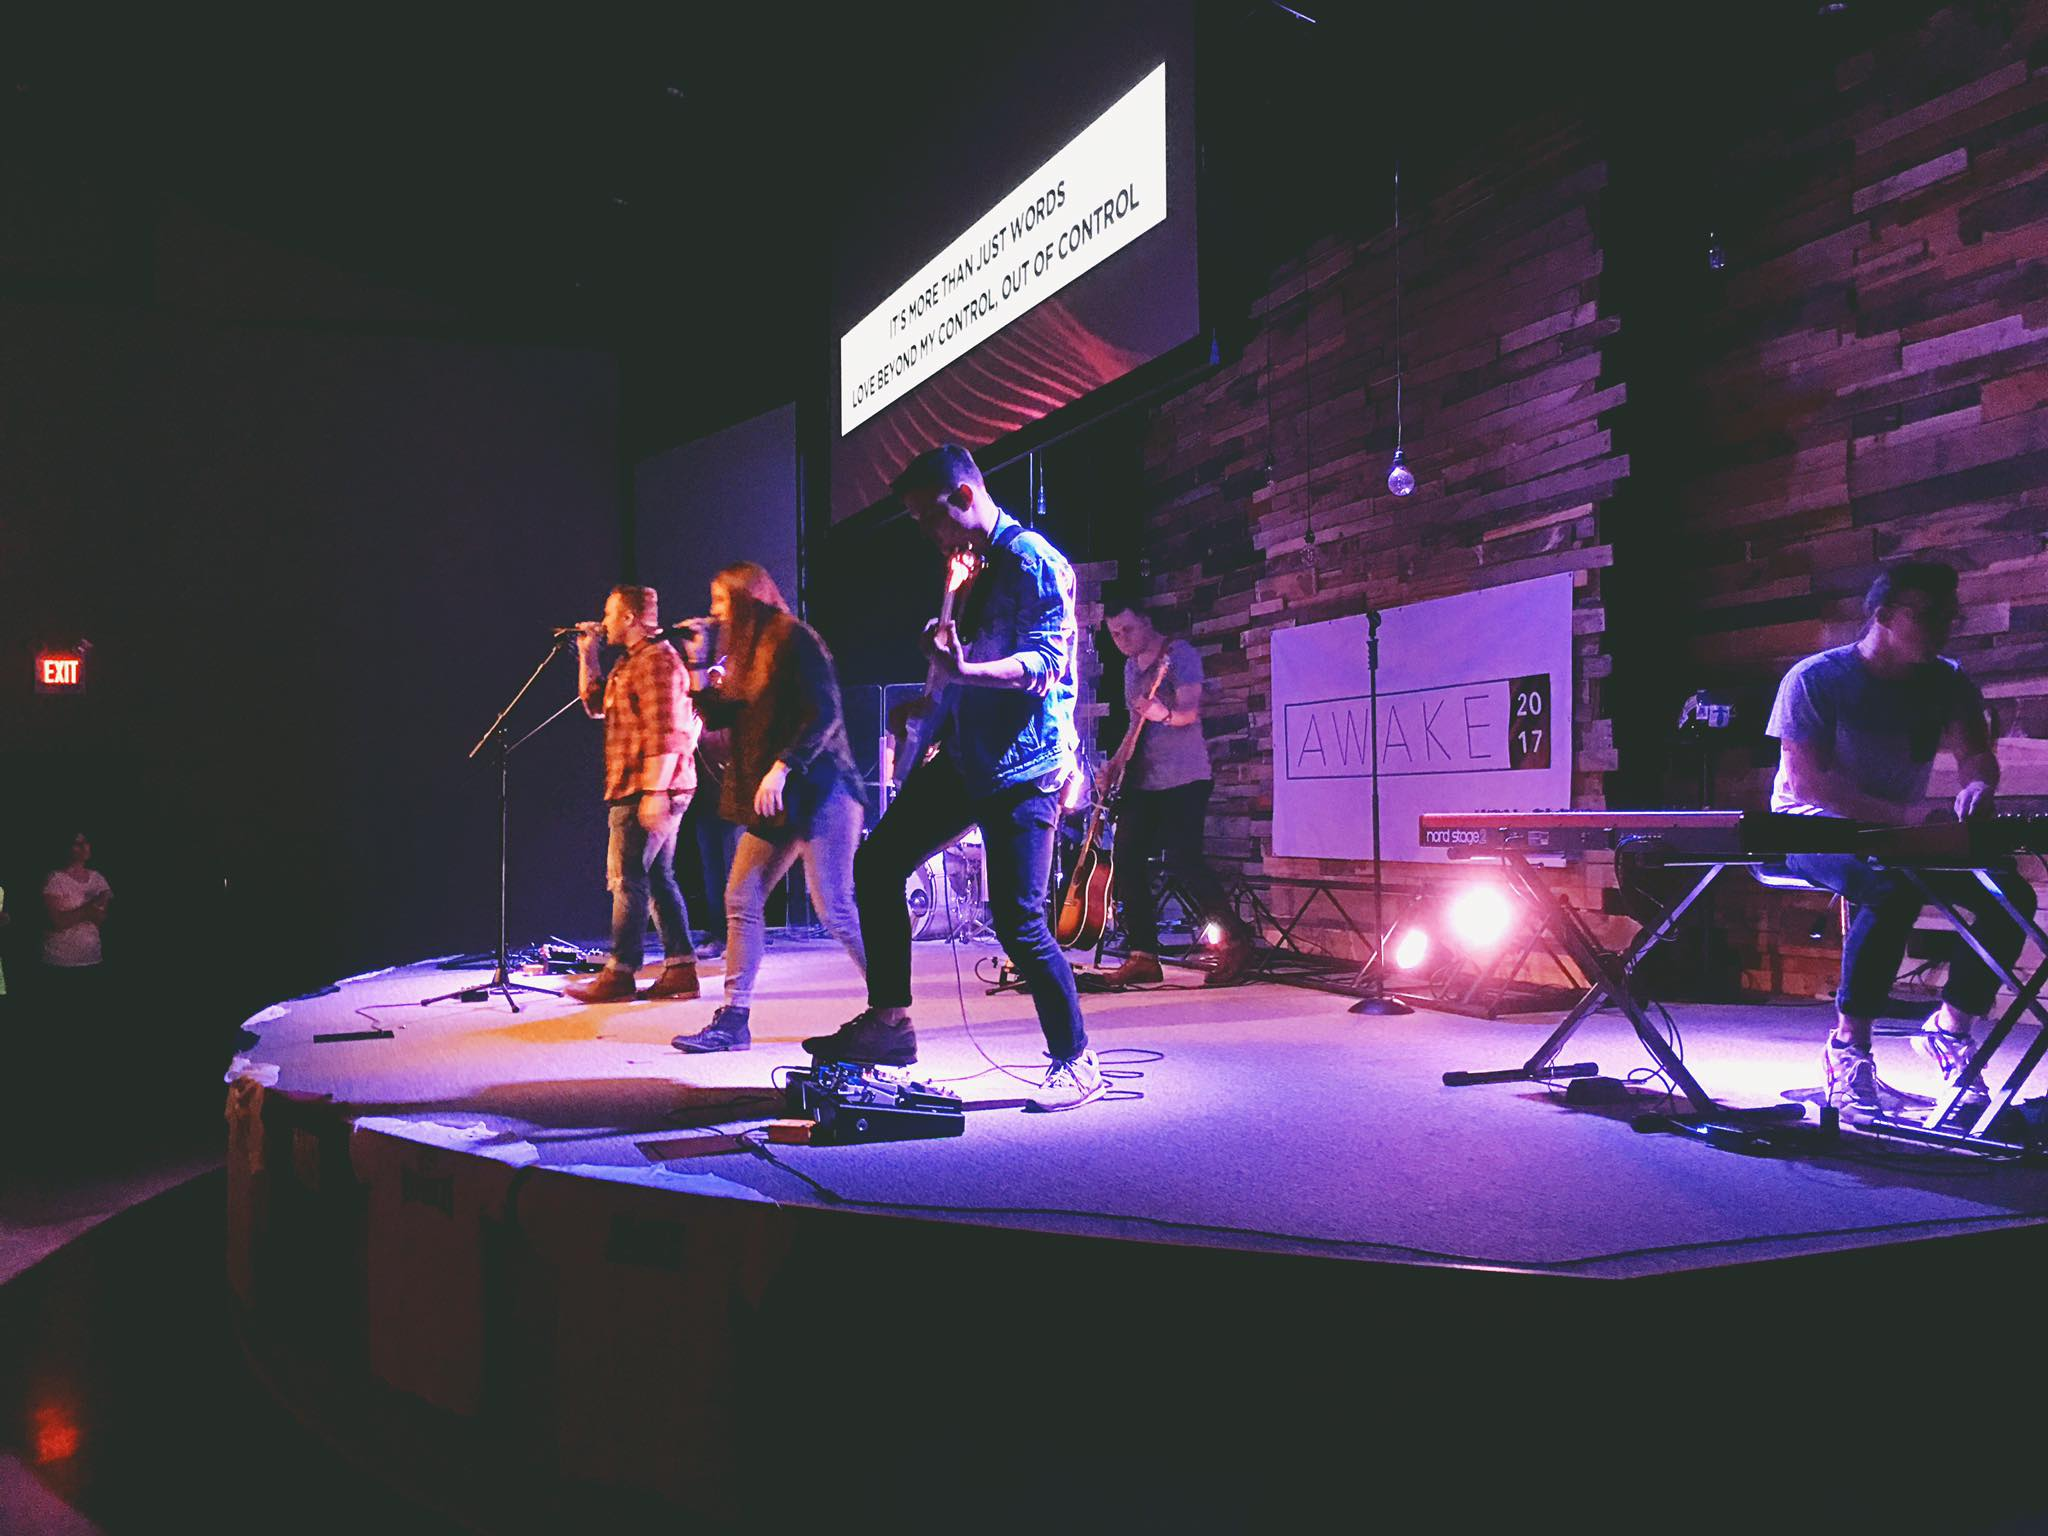 Worship Team - Worship Team volunteers produce a relevant worship environment through audio, video, stage managing, or lighting, that is comfortable and inviting.Read More